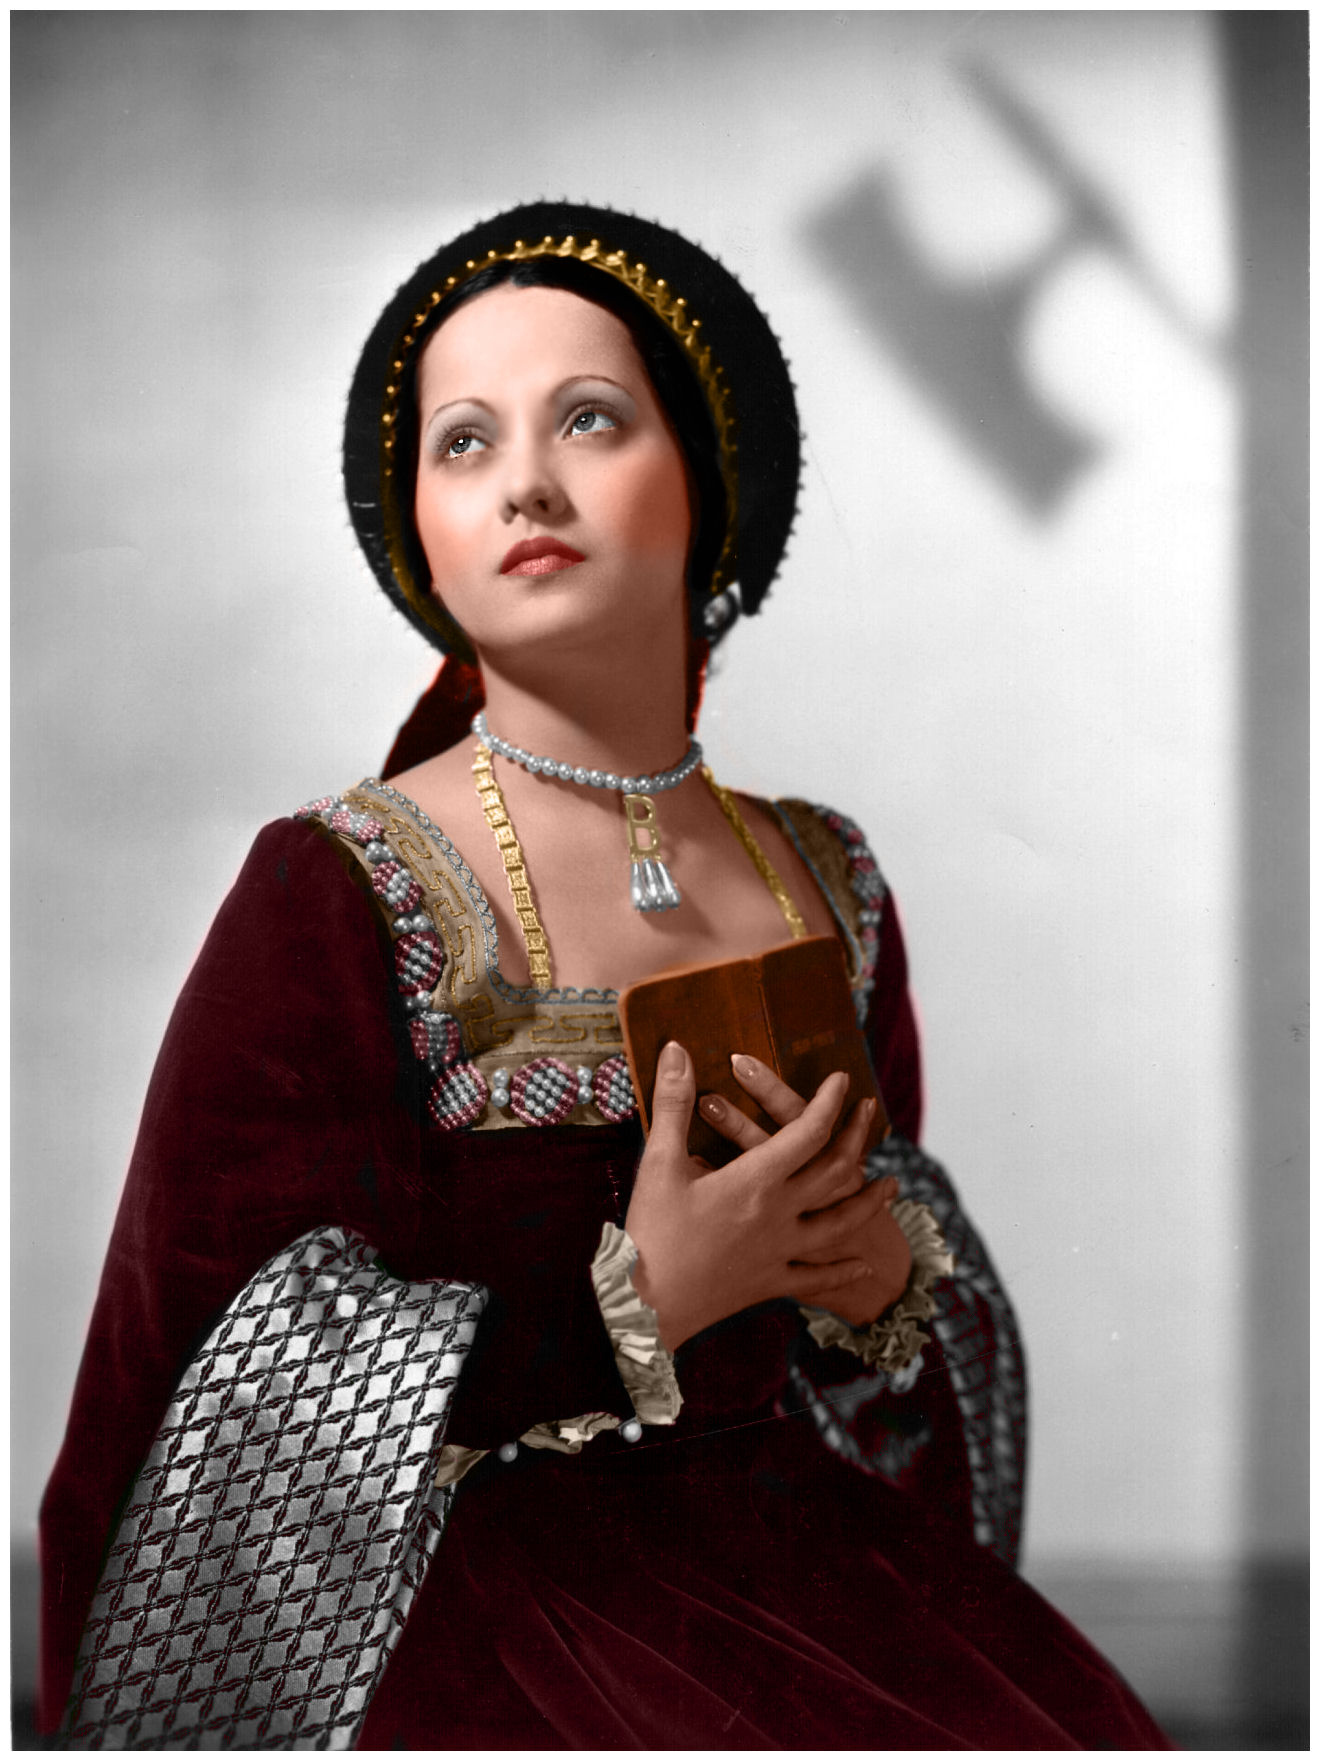 the women in the life of henry viii The private life of henry viii (1933) and young bess (1953) laughton won the best actor oscar for his seminal portrayal of henry tudor in private life , and he reprised the part 20 years later with a cameo in young bess.